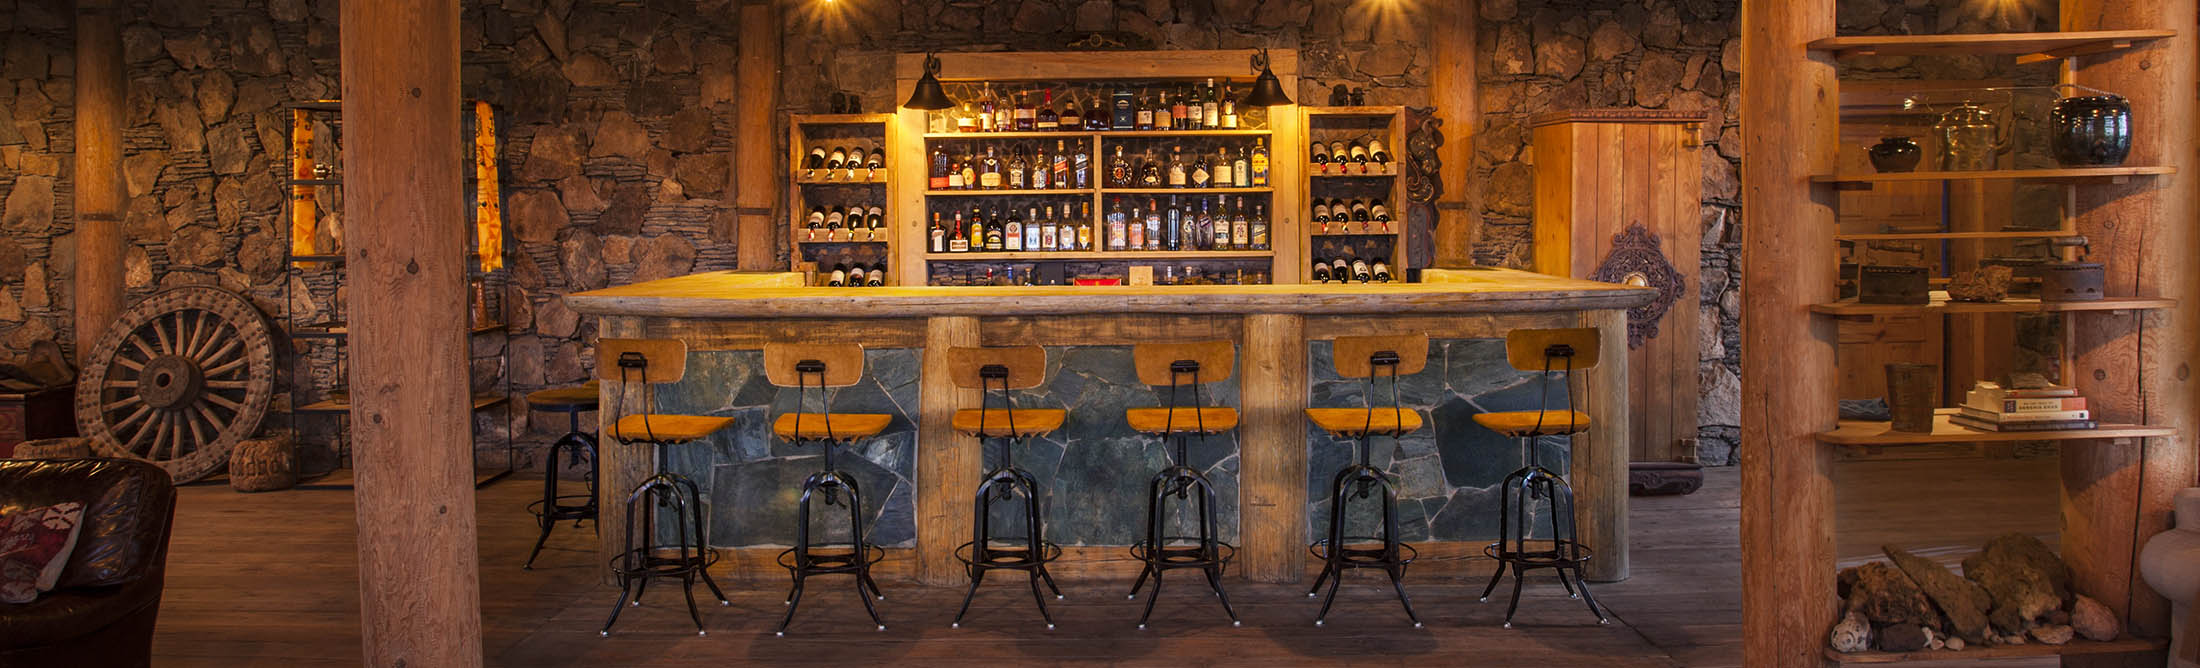 Earn Your Drink at These Incredibly Hard-to-Reach Bars and Pubs - Bloomberg